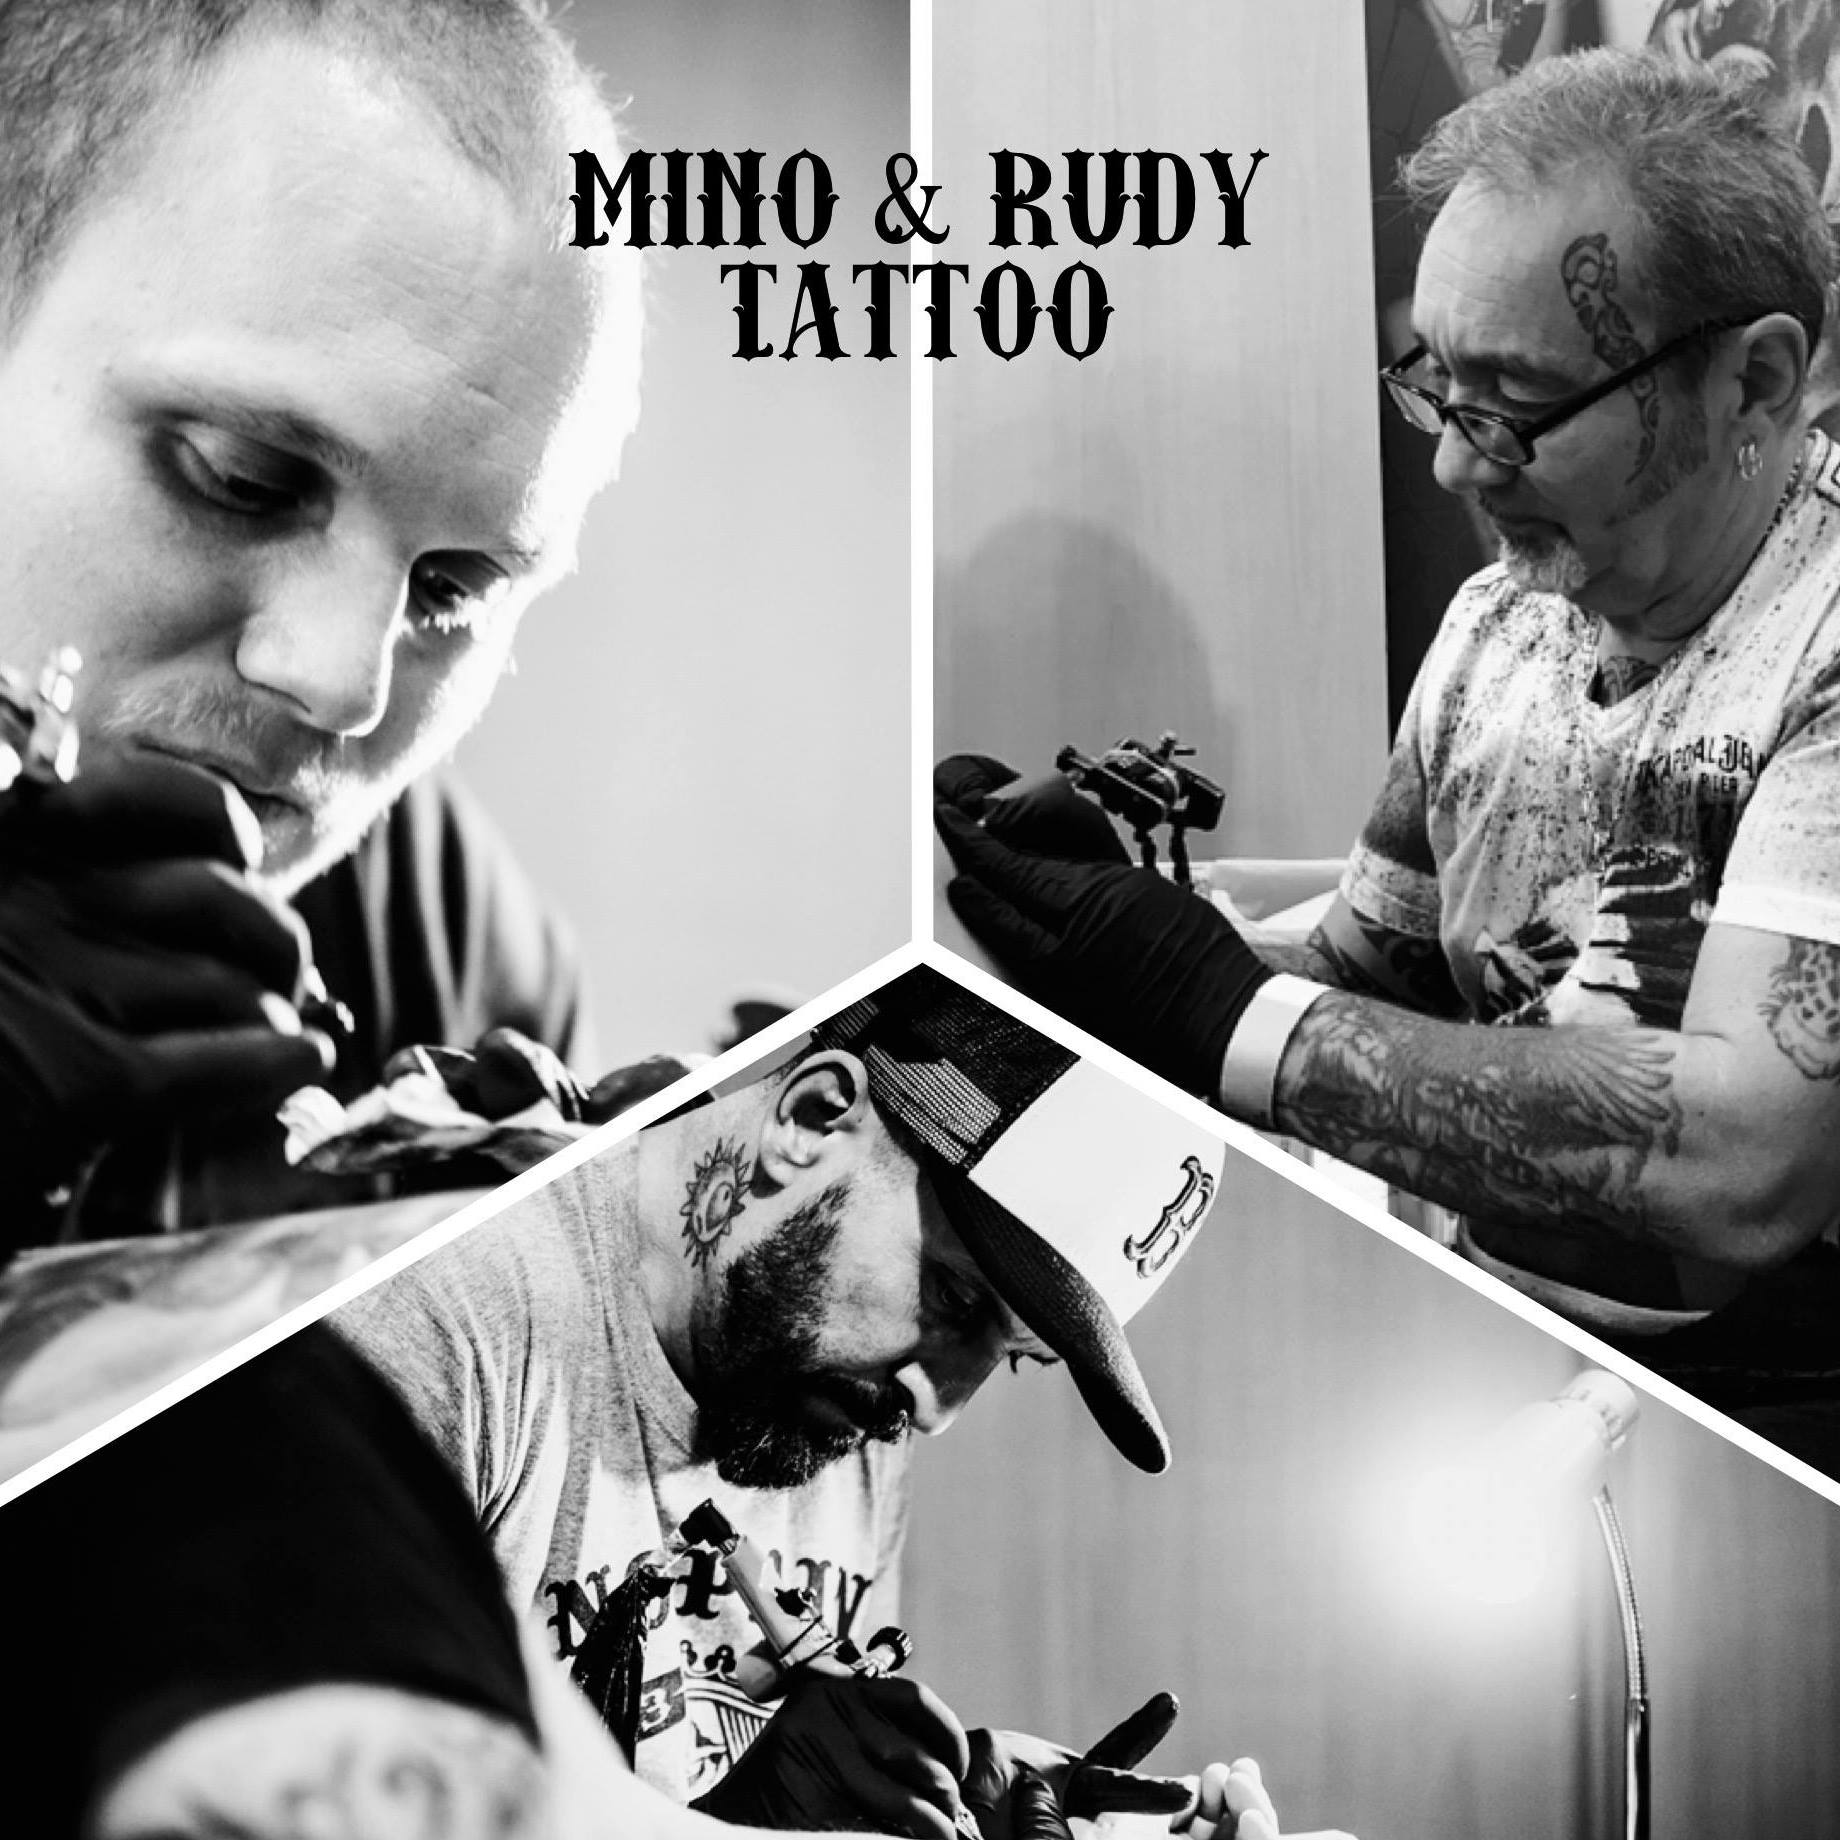 MINO TATTOO & RUDY